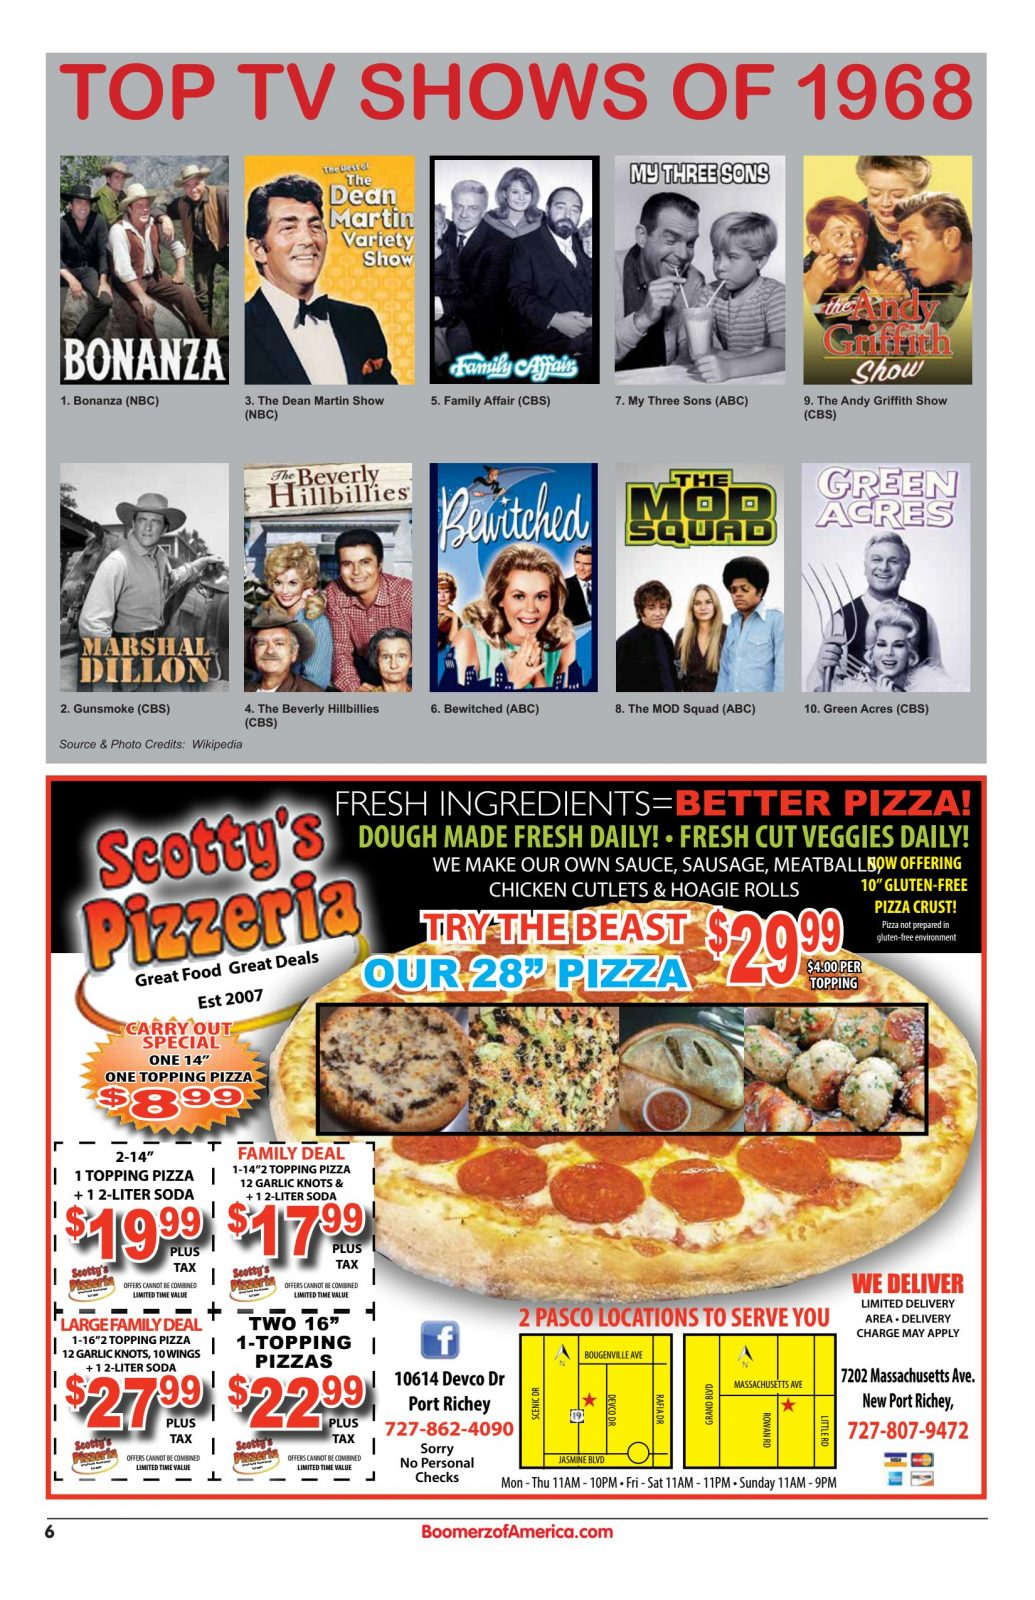 Top TV Shows of 1968 - Scotty's Pizzeria